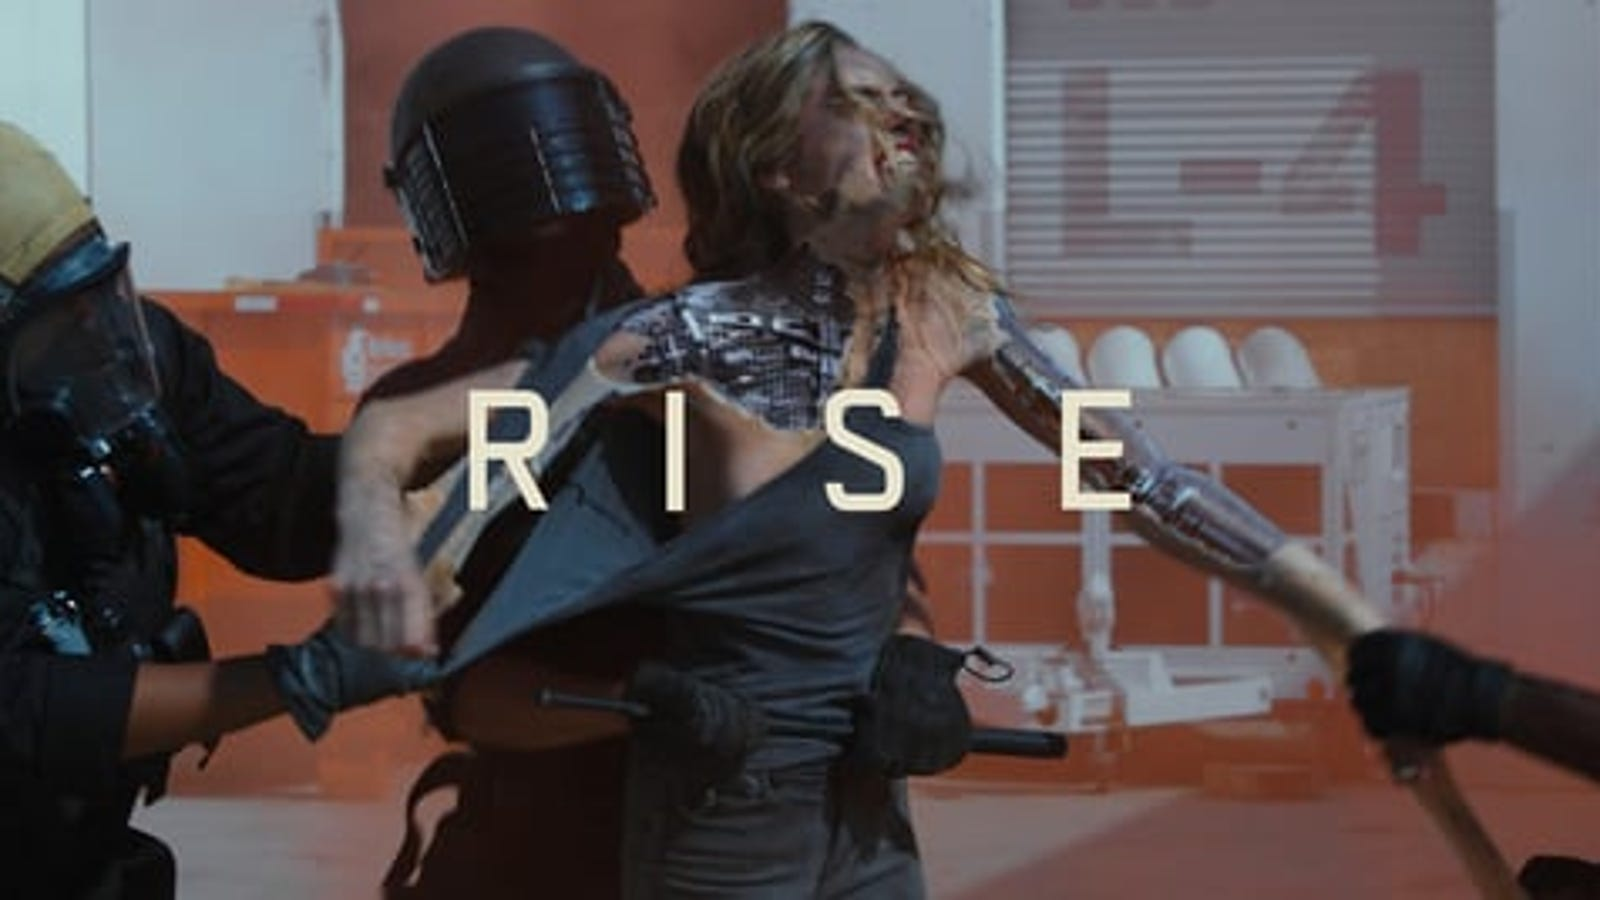 This Wonderful Short About a Robot War Deserves to Be a Full-Length Film